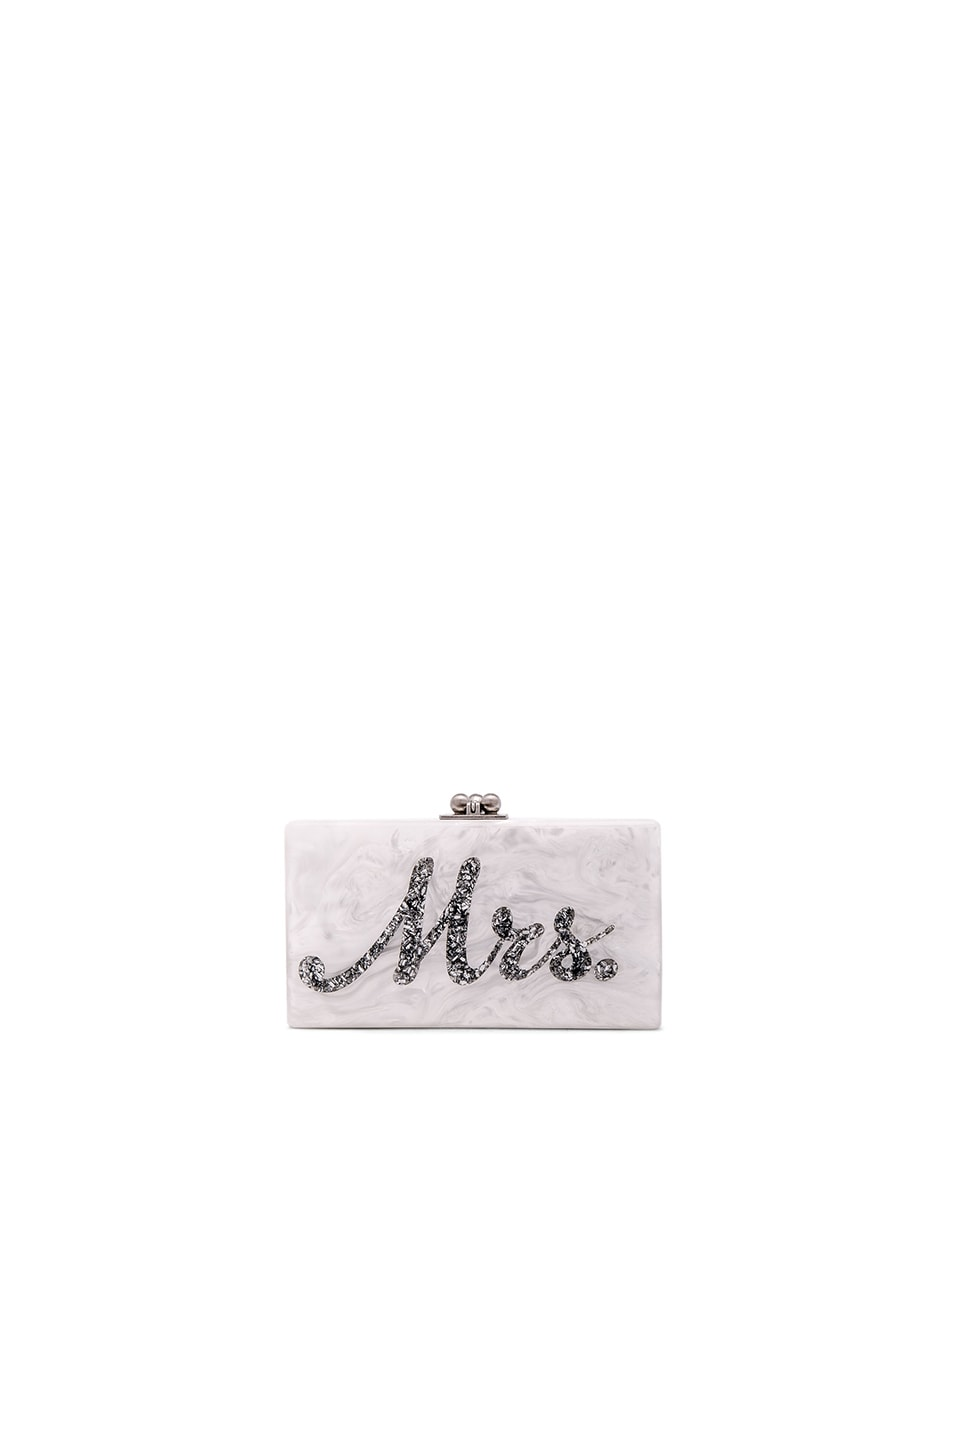 Image 1 of Edie Parker Mrs. Clutch in White & Silver Confetti